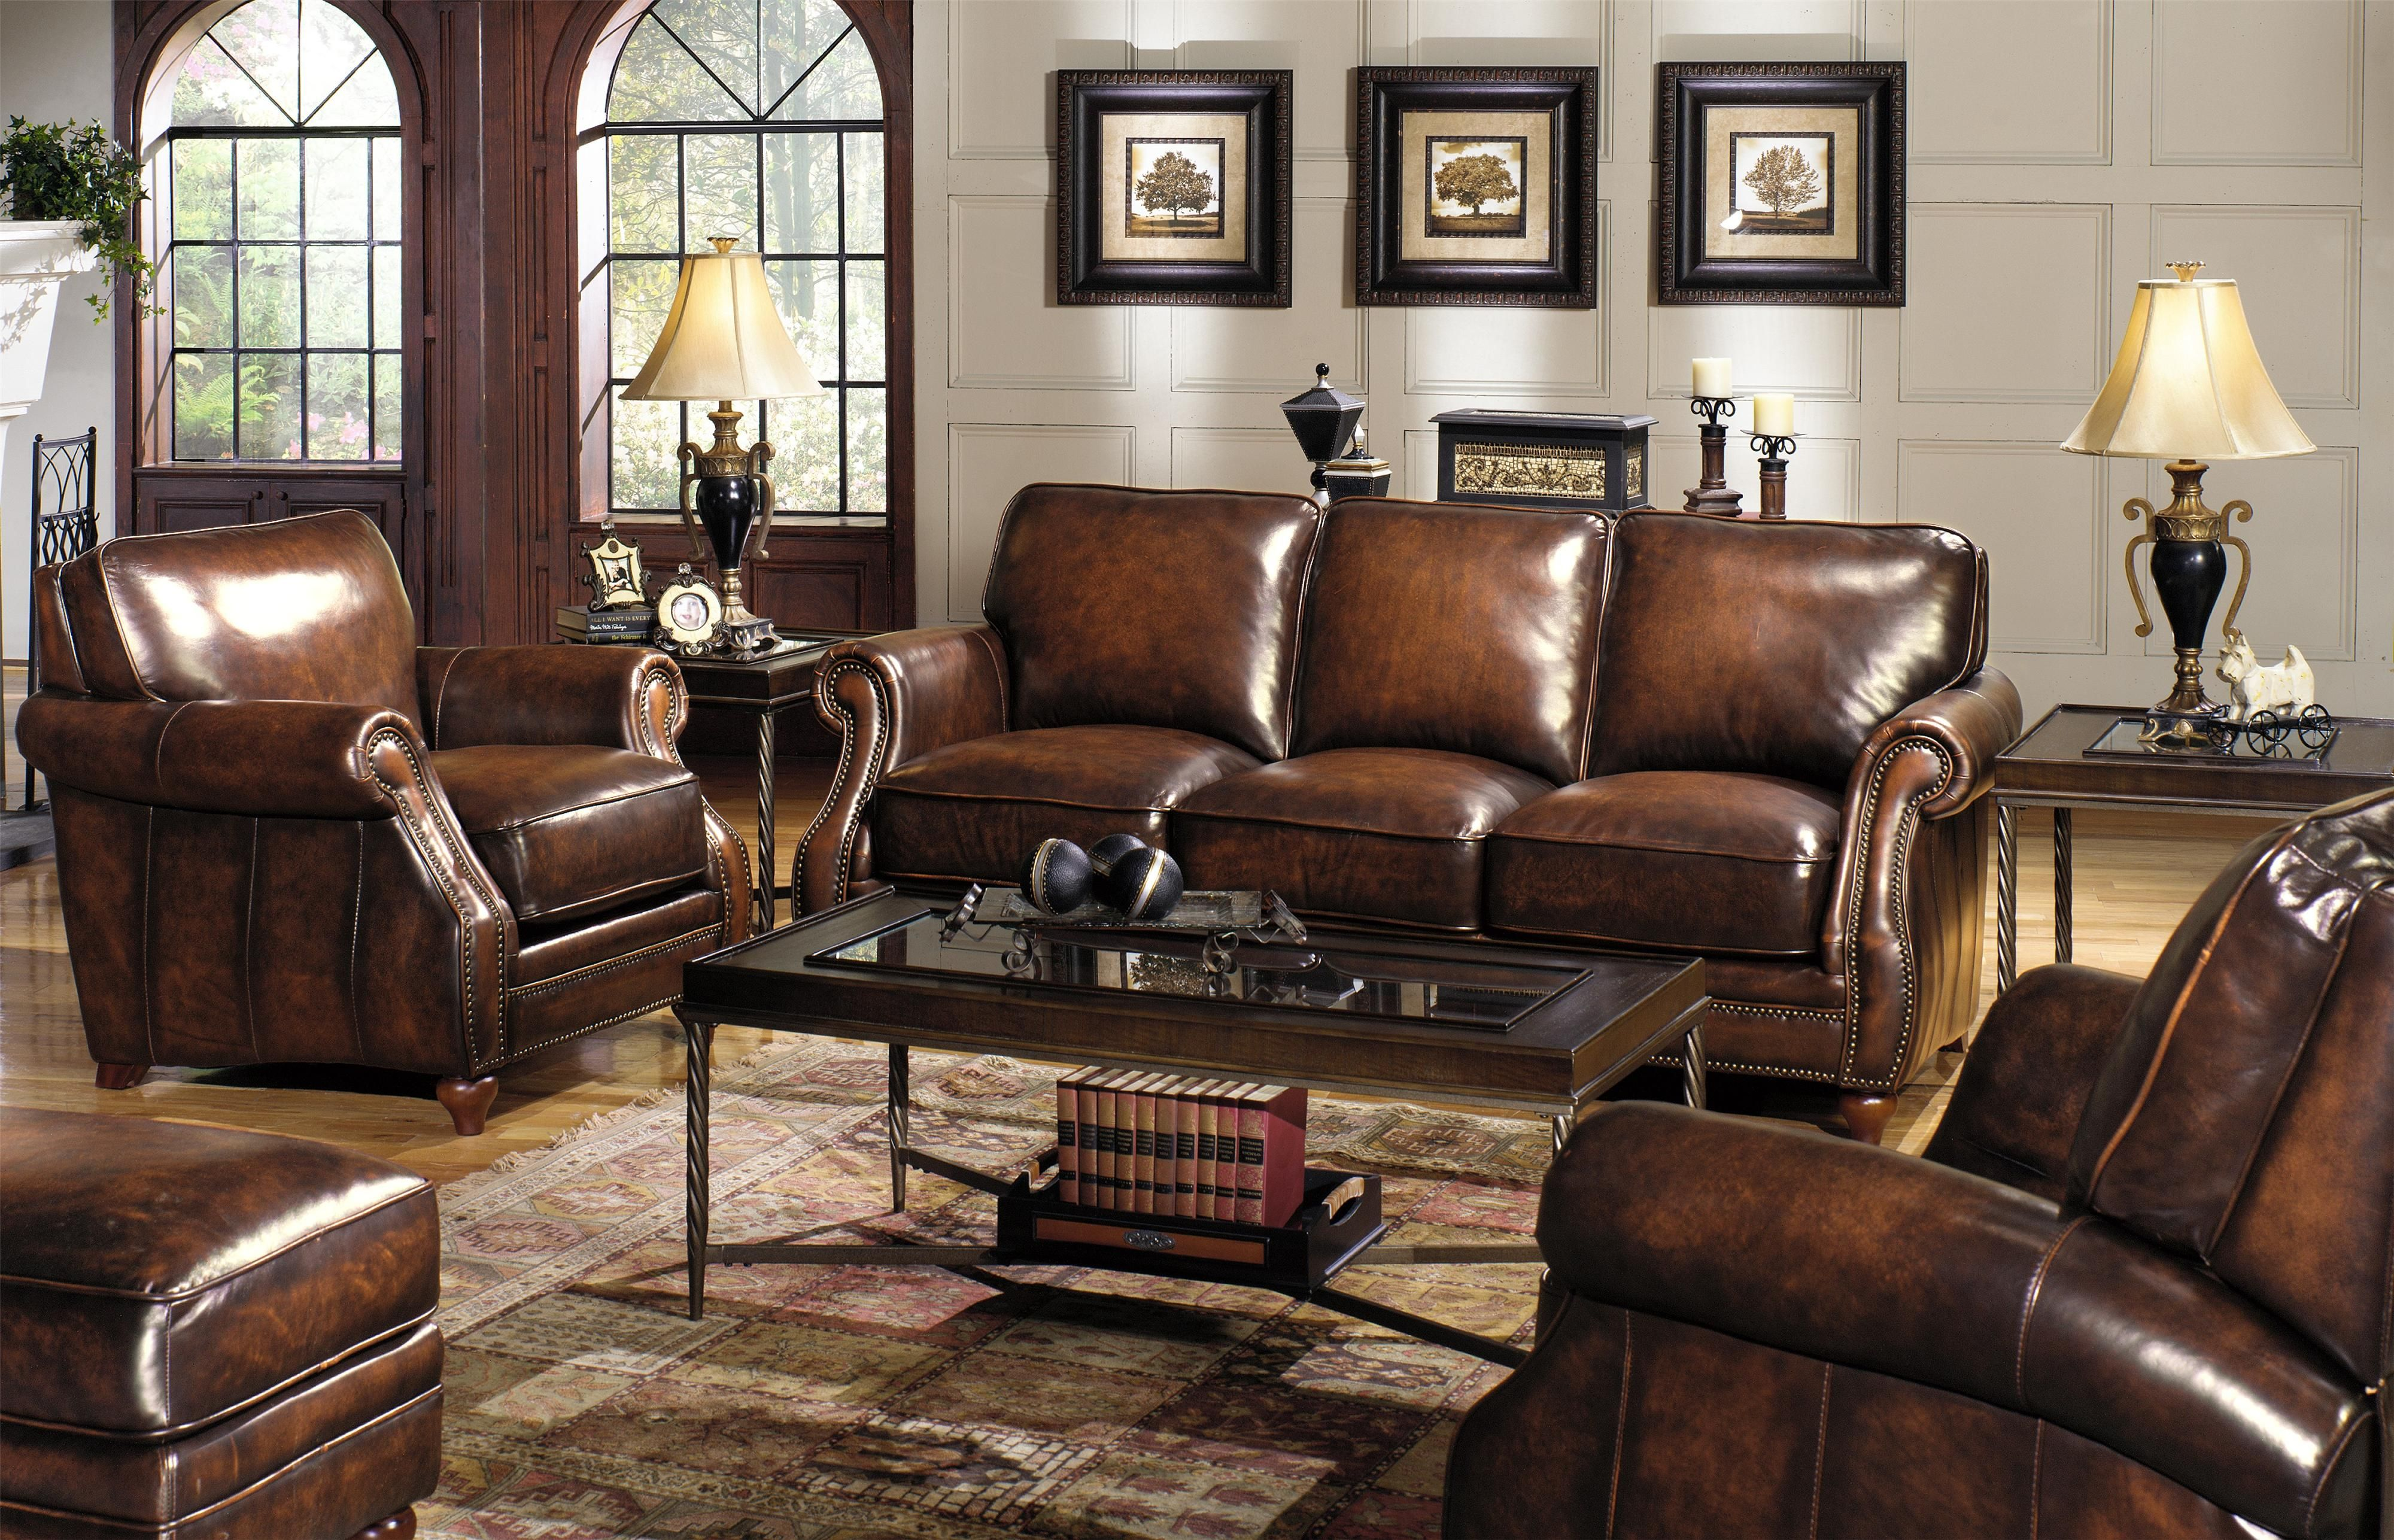 Craftmaster L121500 Traditional Leather Sofa With Rolled Arms And Nailhead Trim Hudson S Furniture